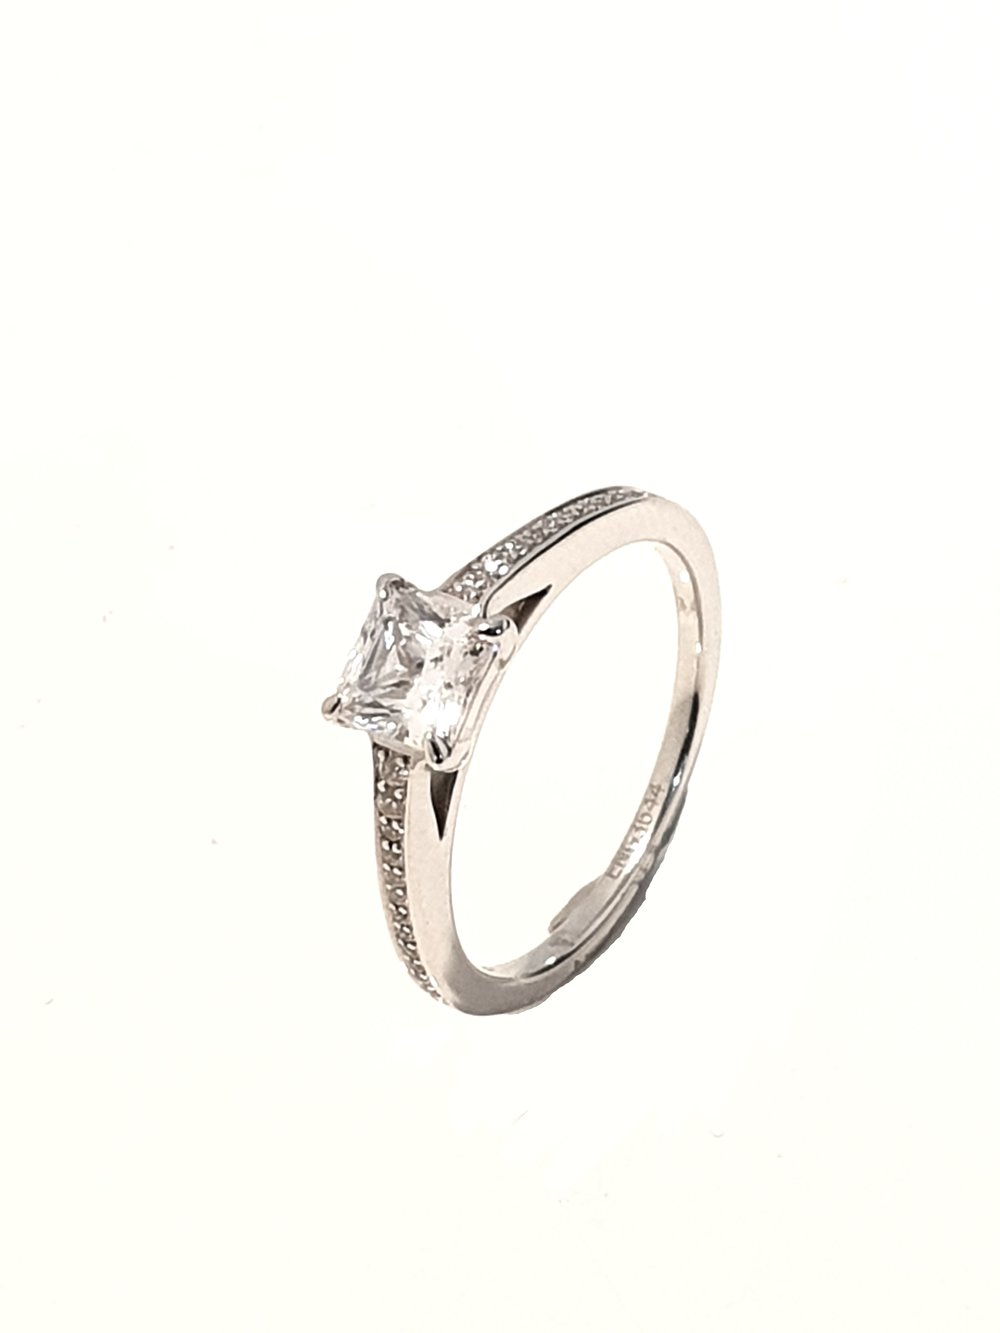 Raphael Collection, Princess 4 Claw Diamond Set Ring  .91ct, G, SI1 + .16ct shoulders  Stock Code: Z1418  18ct White Gold: £4650  Platinum: £4800  Made To Order, approx 3 weeks.